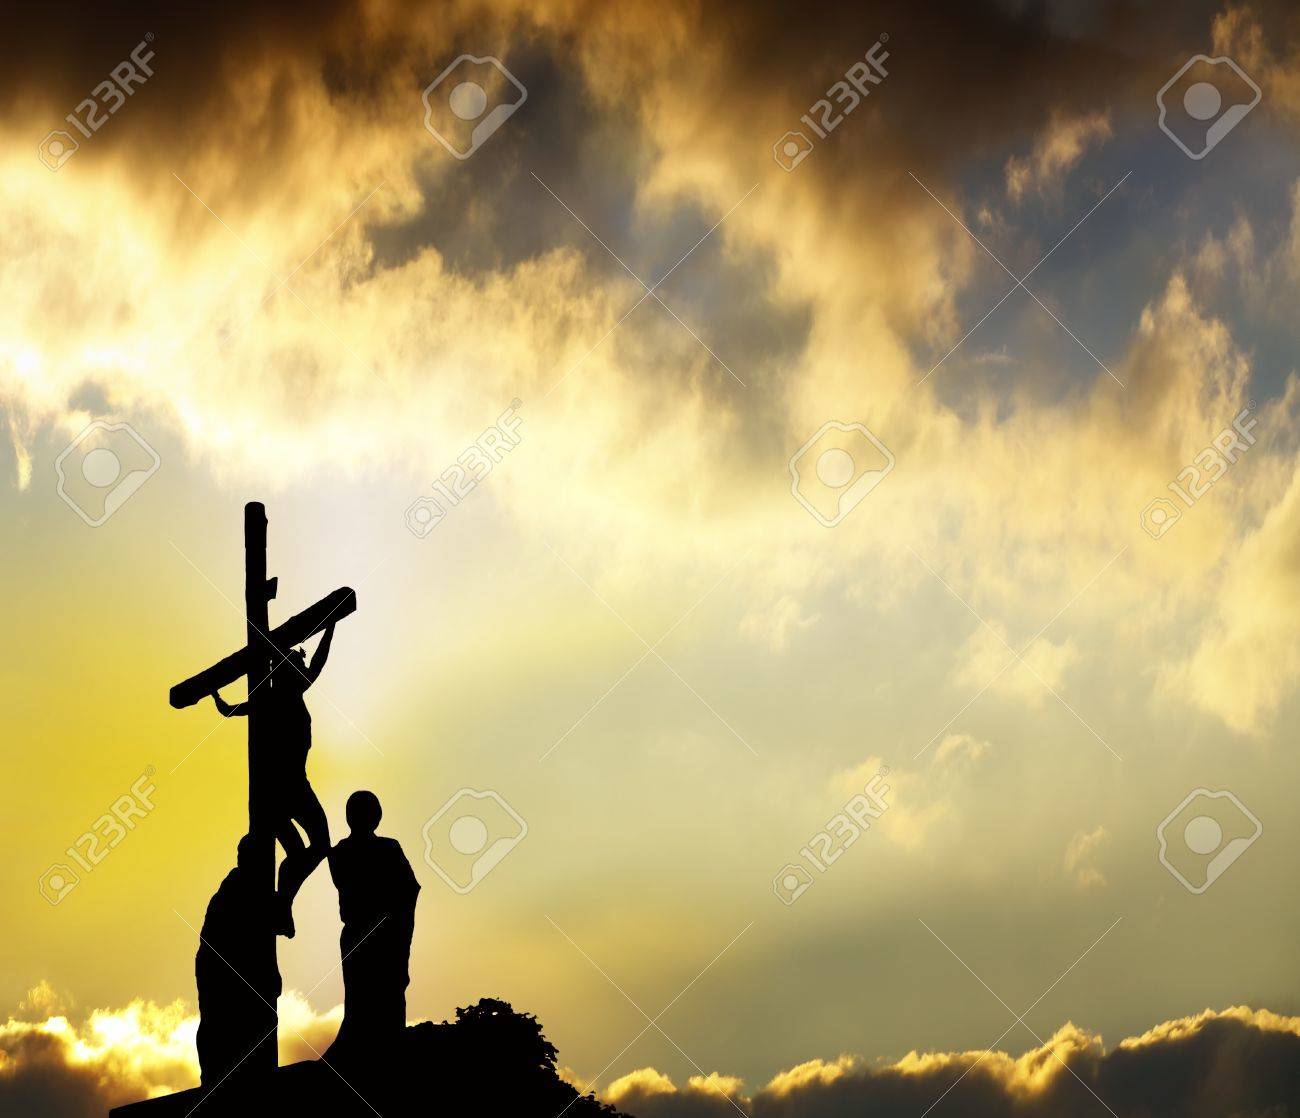 Silhouette of the holy cross on background of storm clouds stock - Calvary Forgiveness Jesus Hangs On Cross